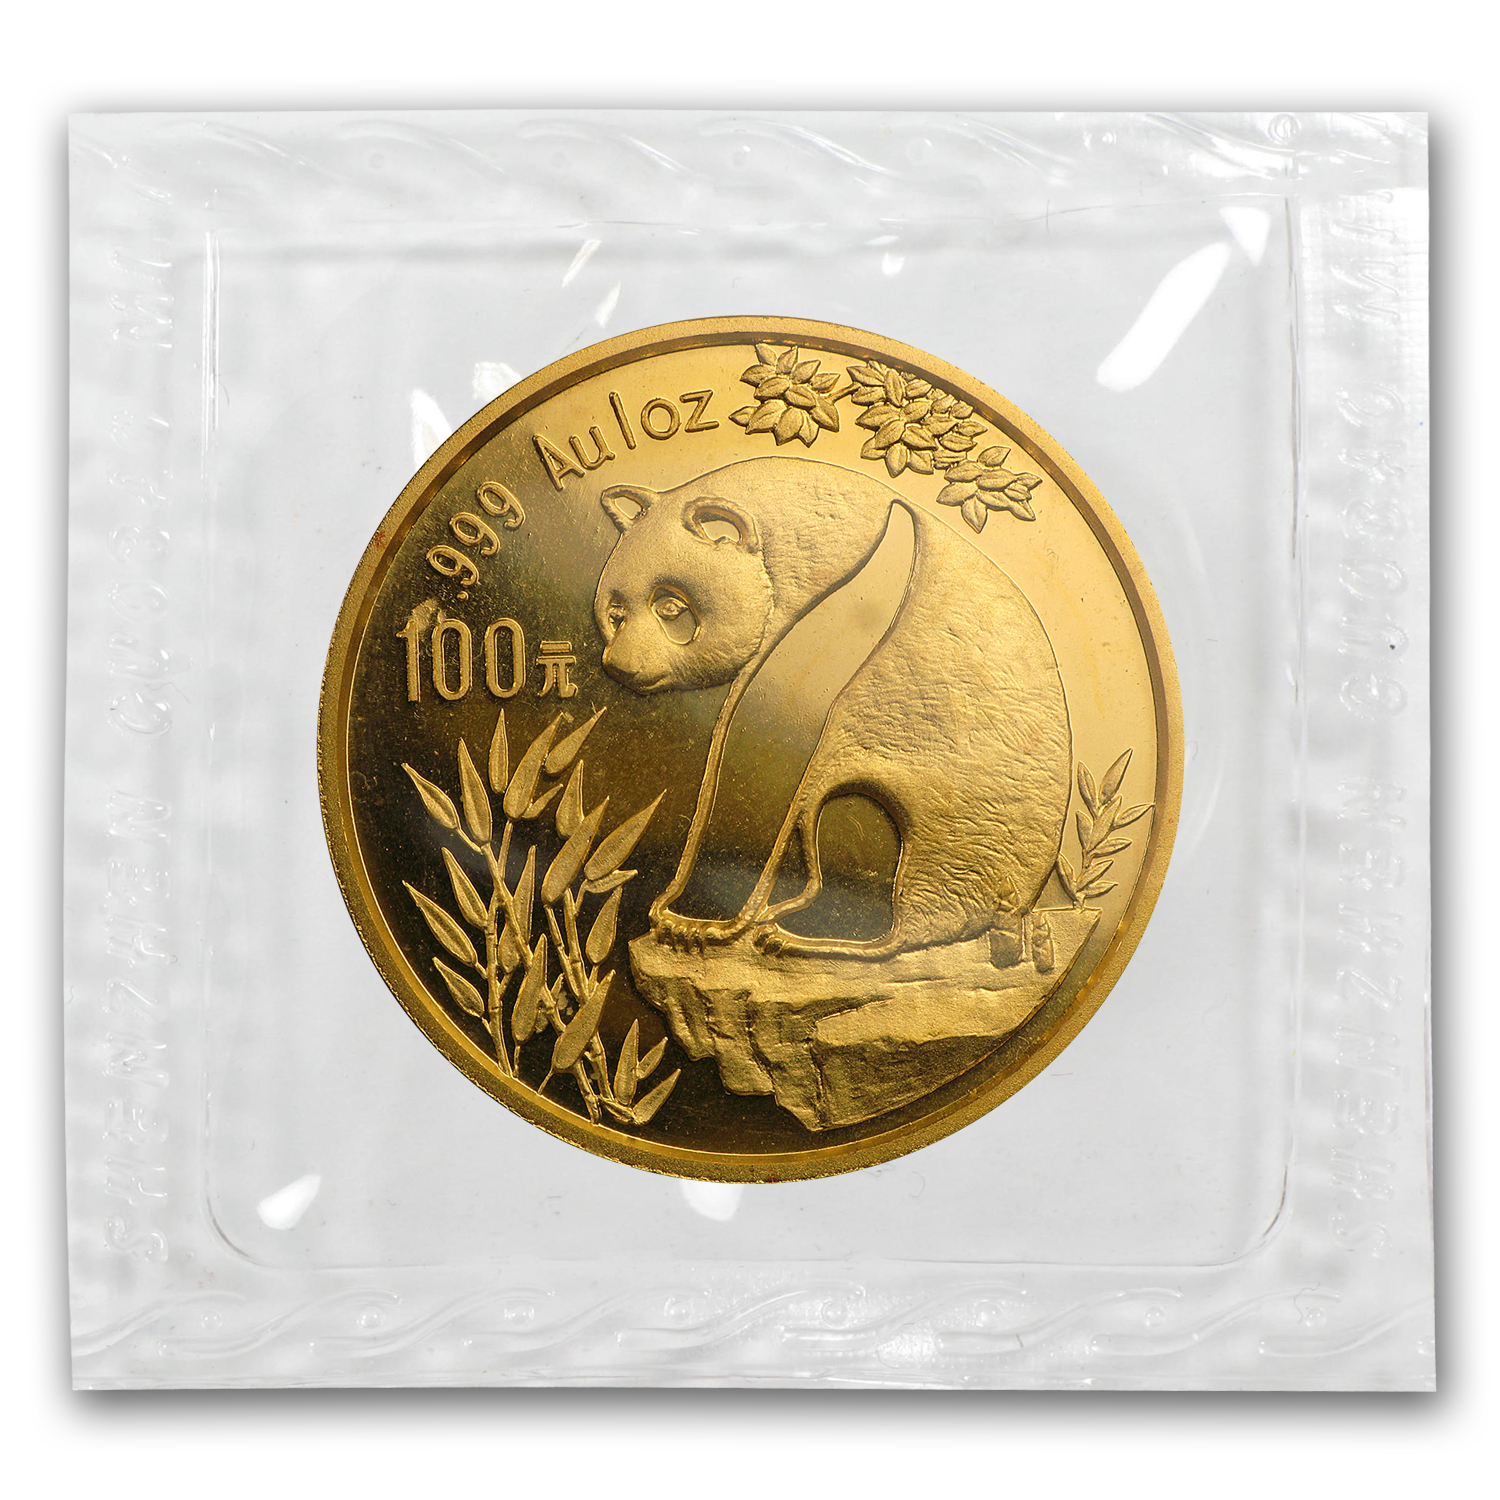 1993 China 1 oz Gold Panda Small Date BU (Sealed)